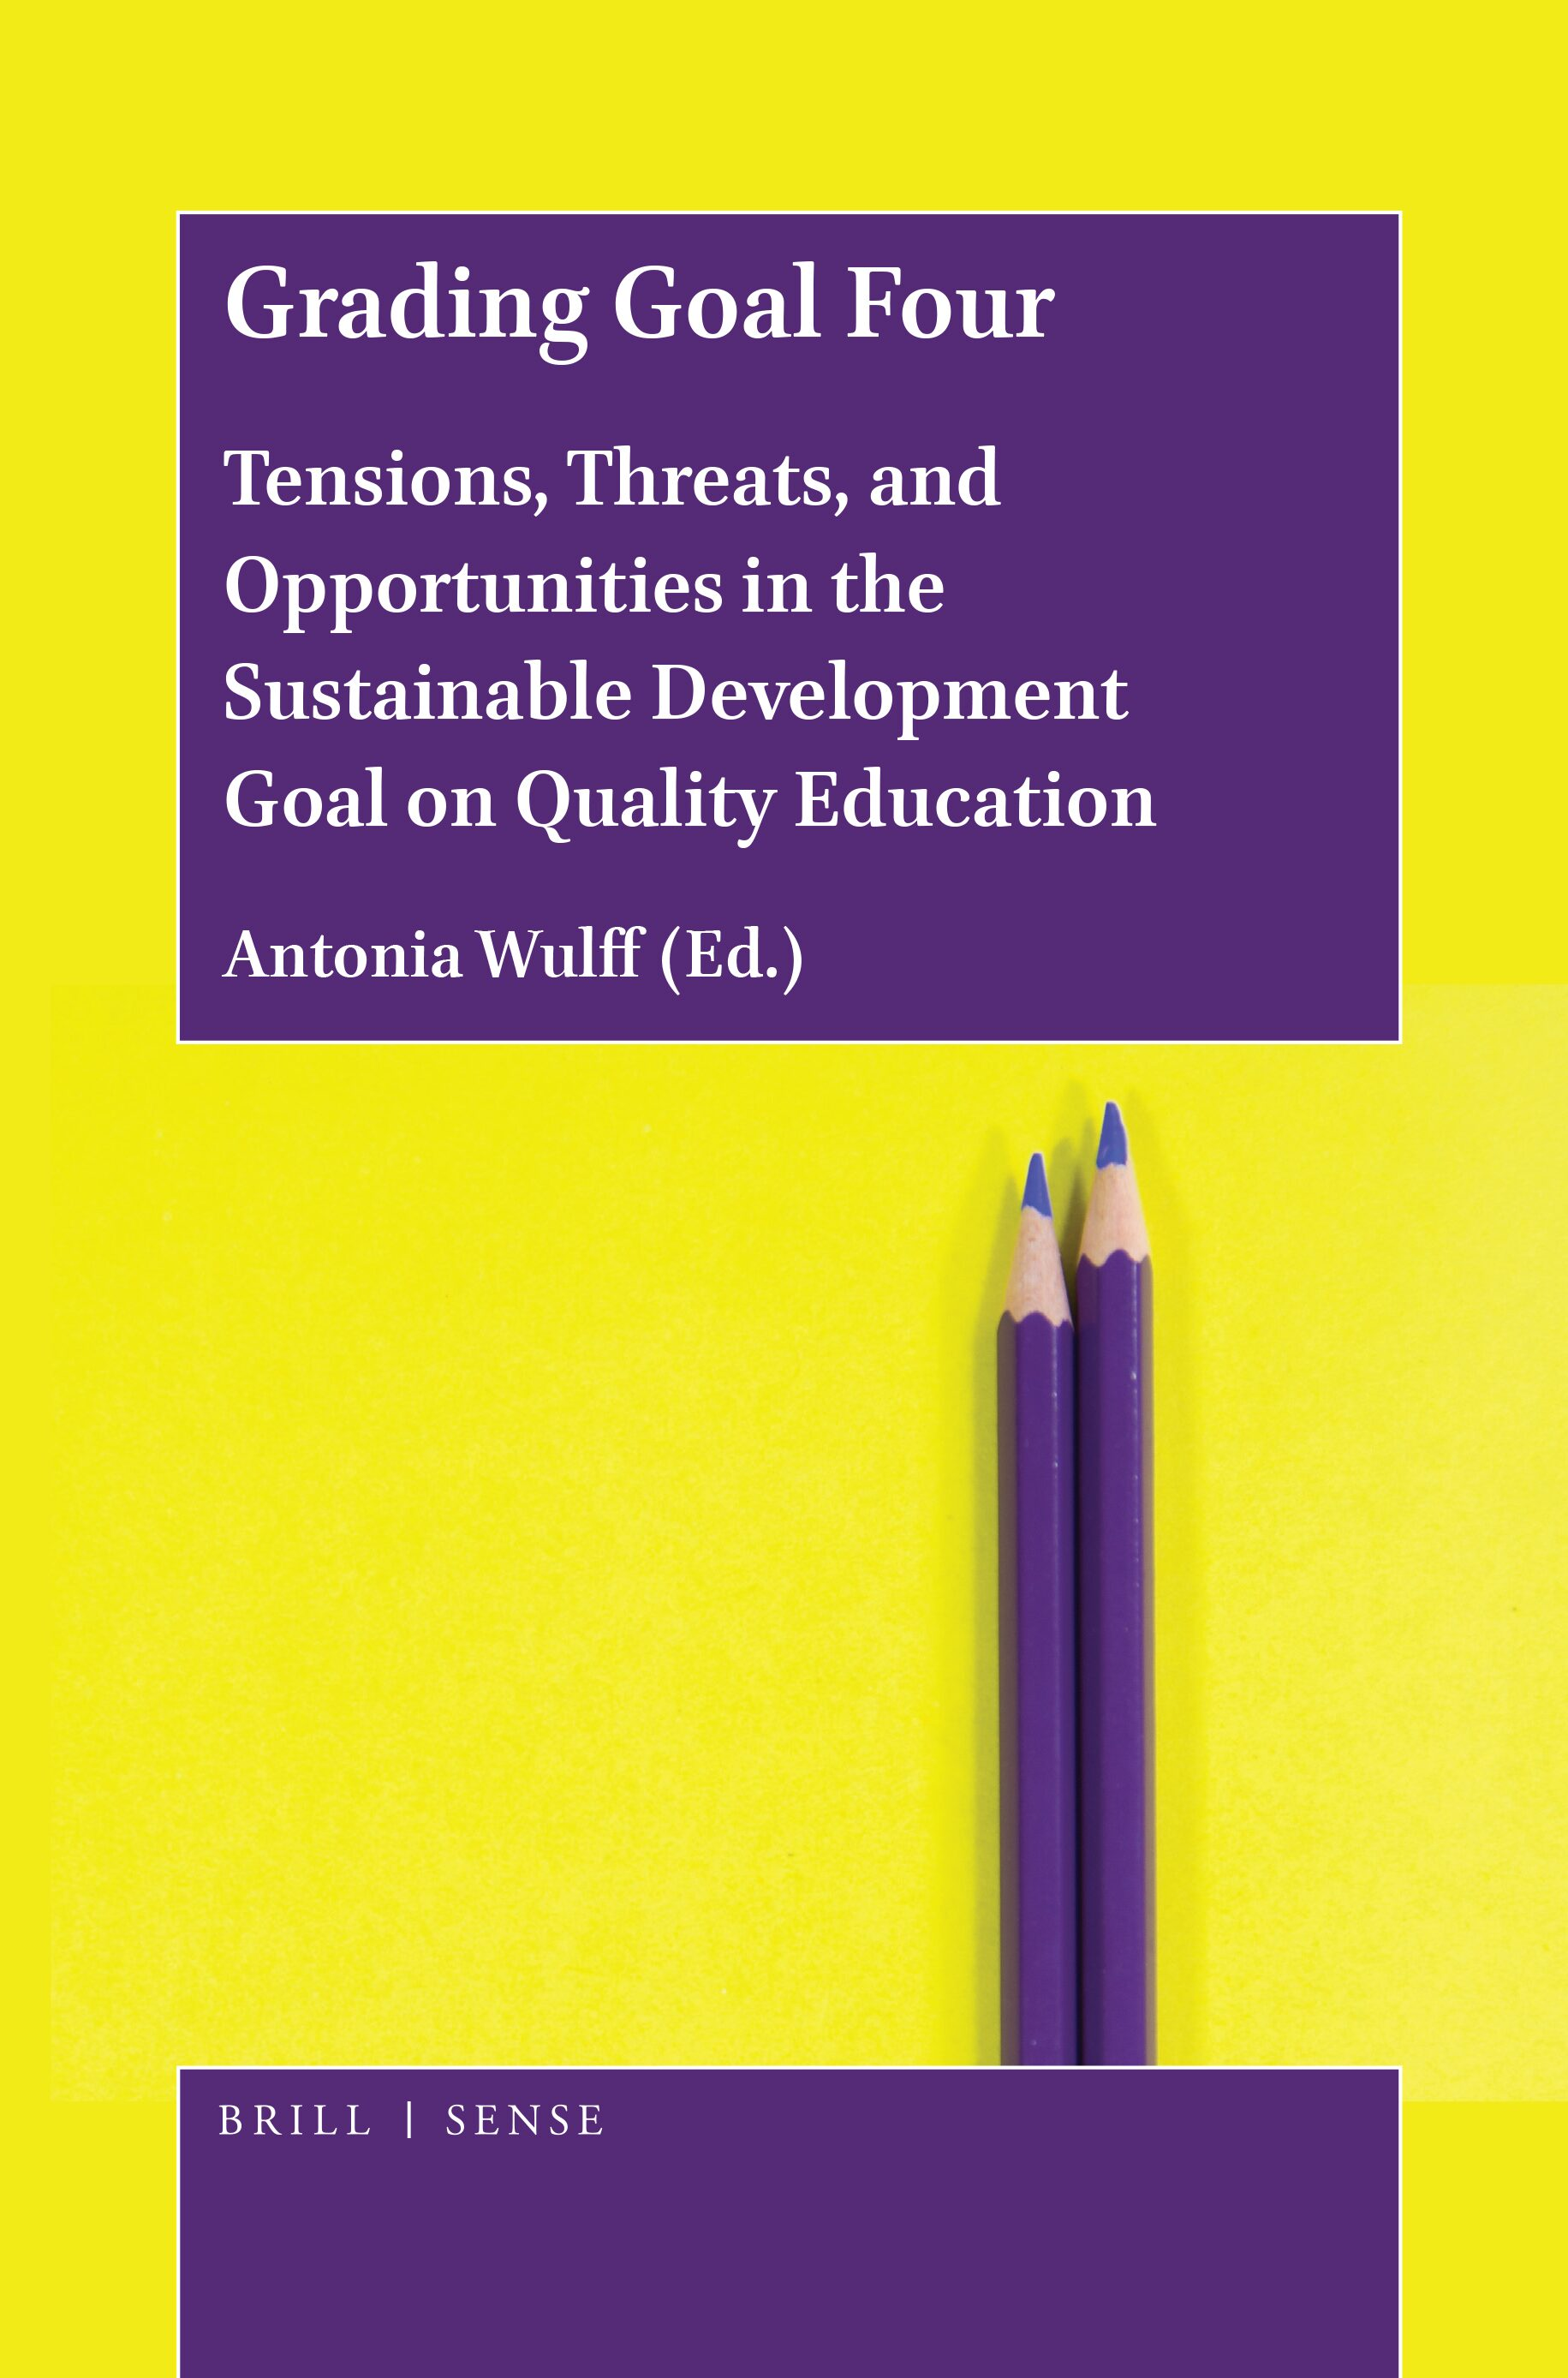 Chapter 9 Gender Equality, Education, and Development in Grading ...